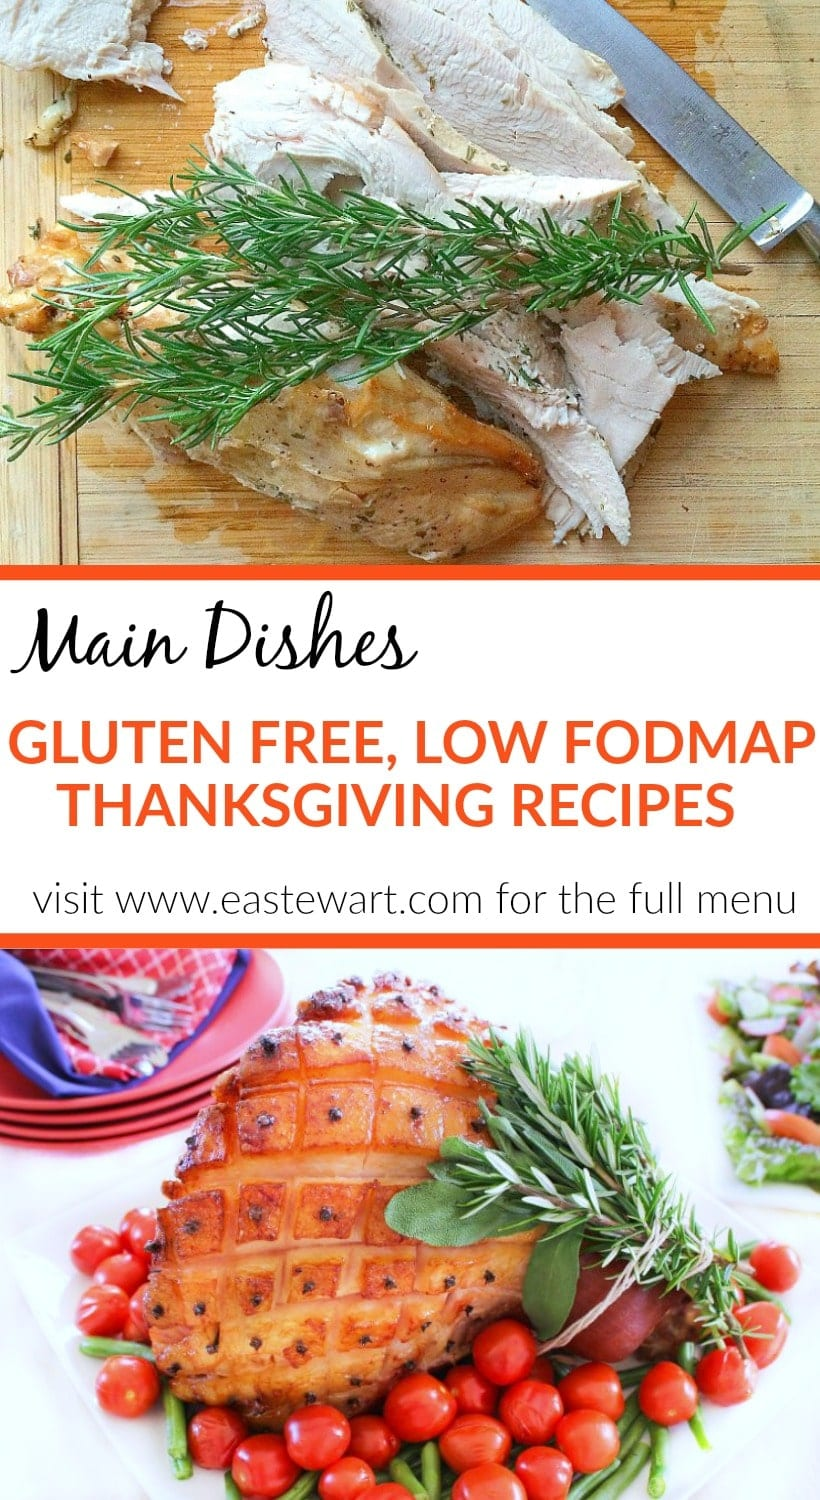 These flavorful gluten free, low FODMAP Thanksgiving main dishes are sure to please everyone you're celebrating with this holiday season!